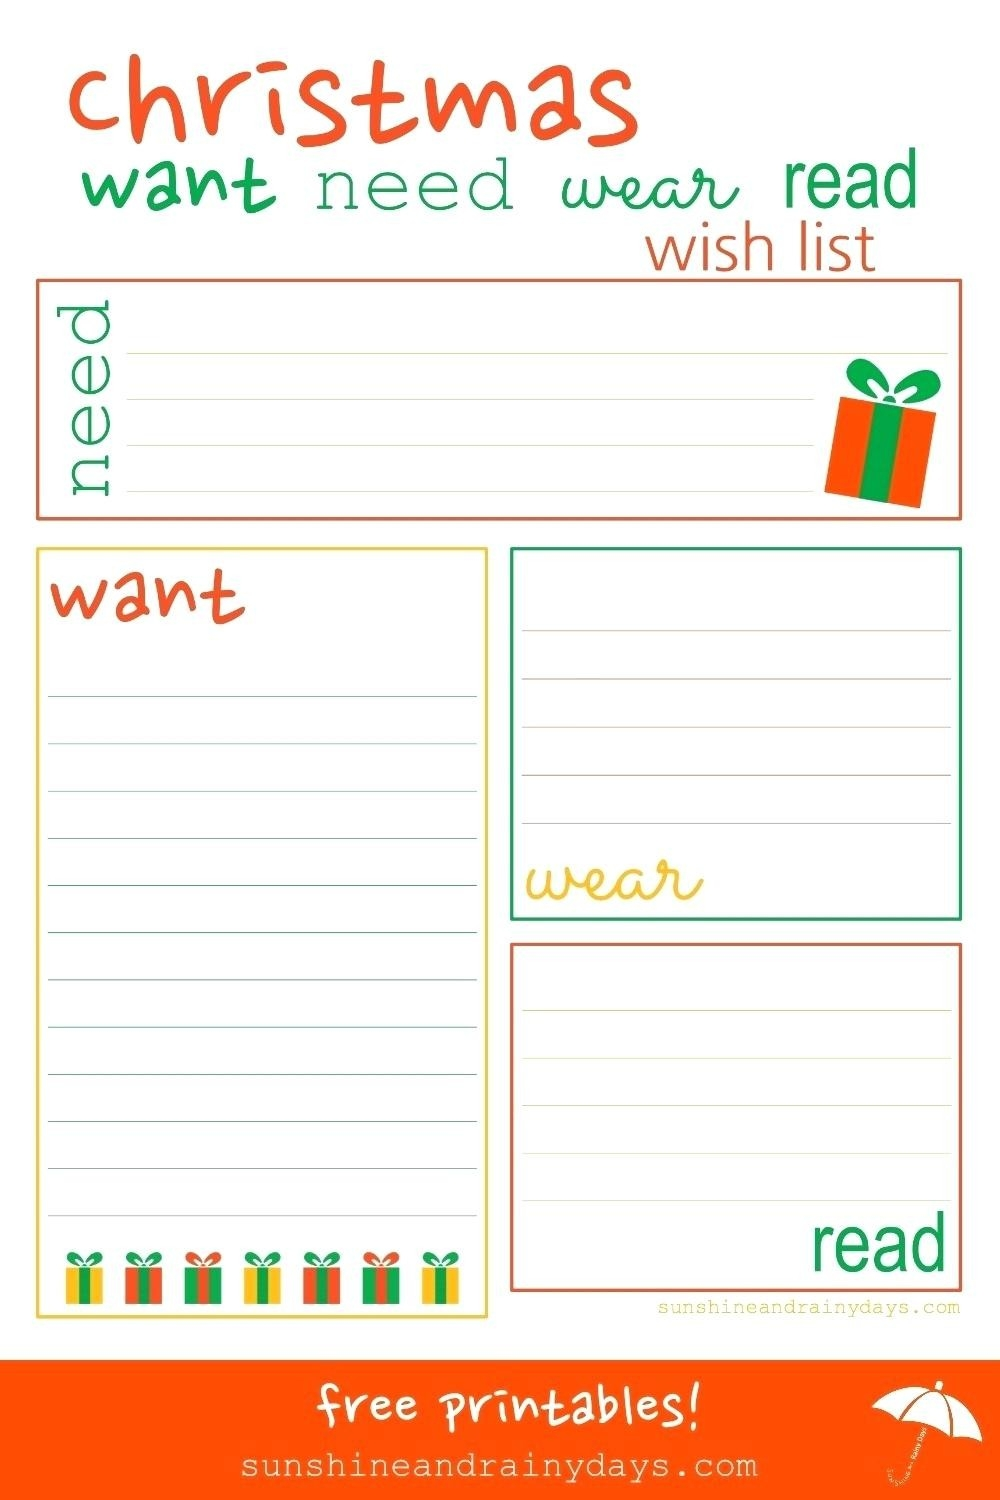 Printable: Printable Christmas Wish List Form throughout Printable Christmas List Want Need Wear Read 24333